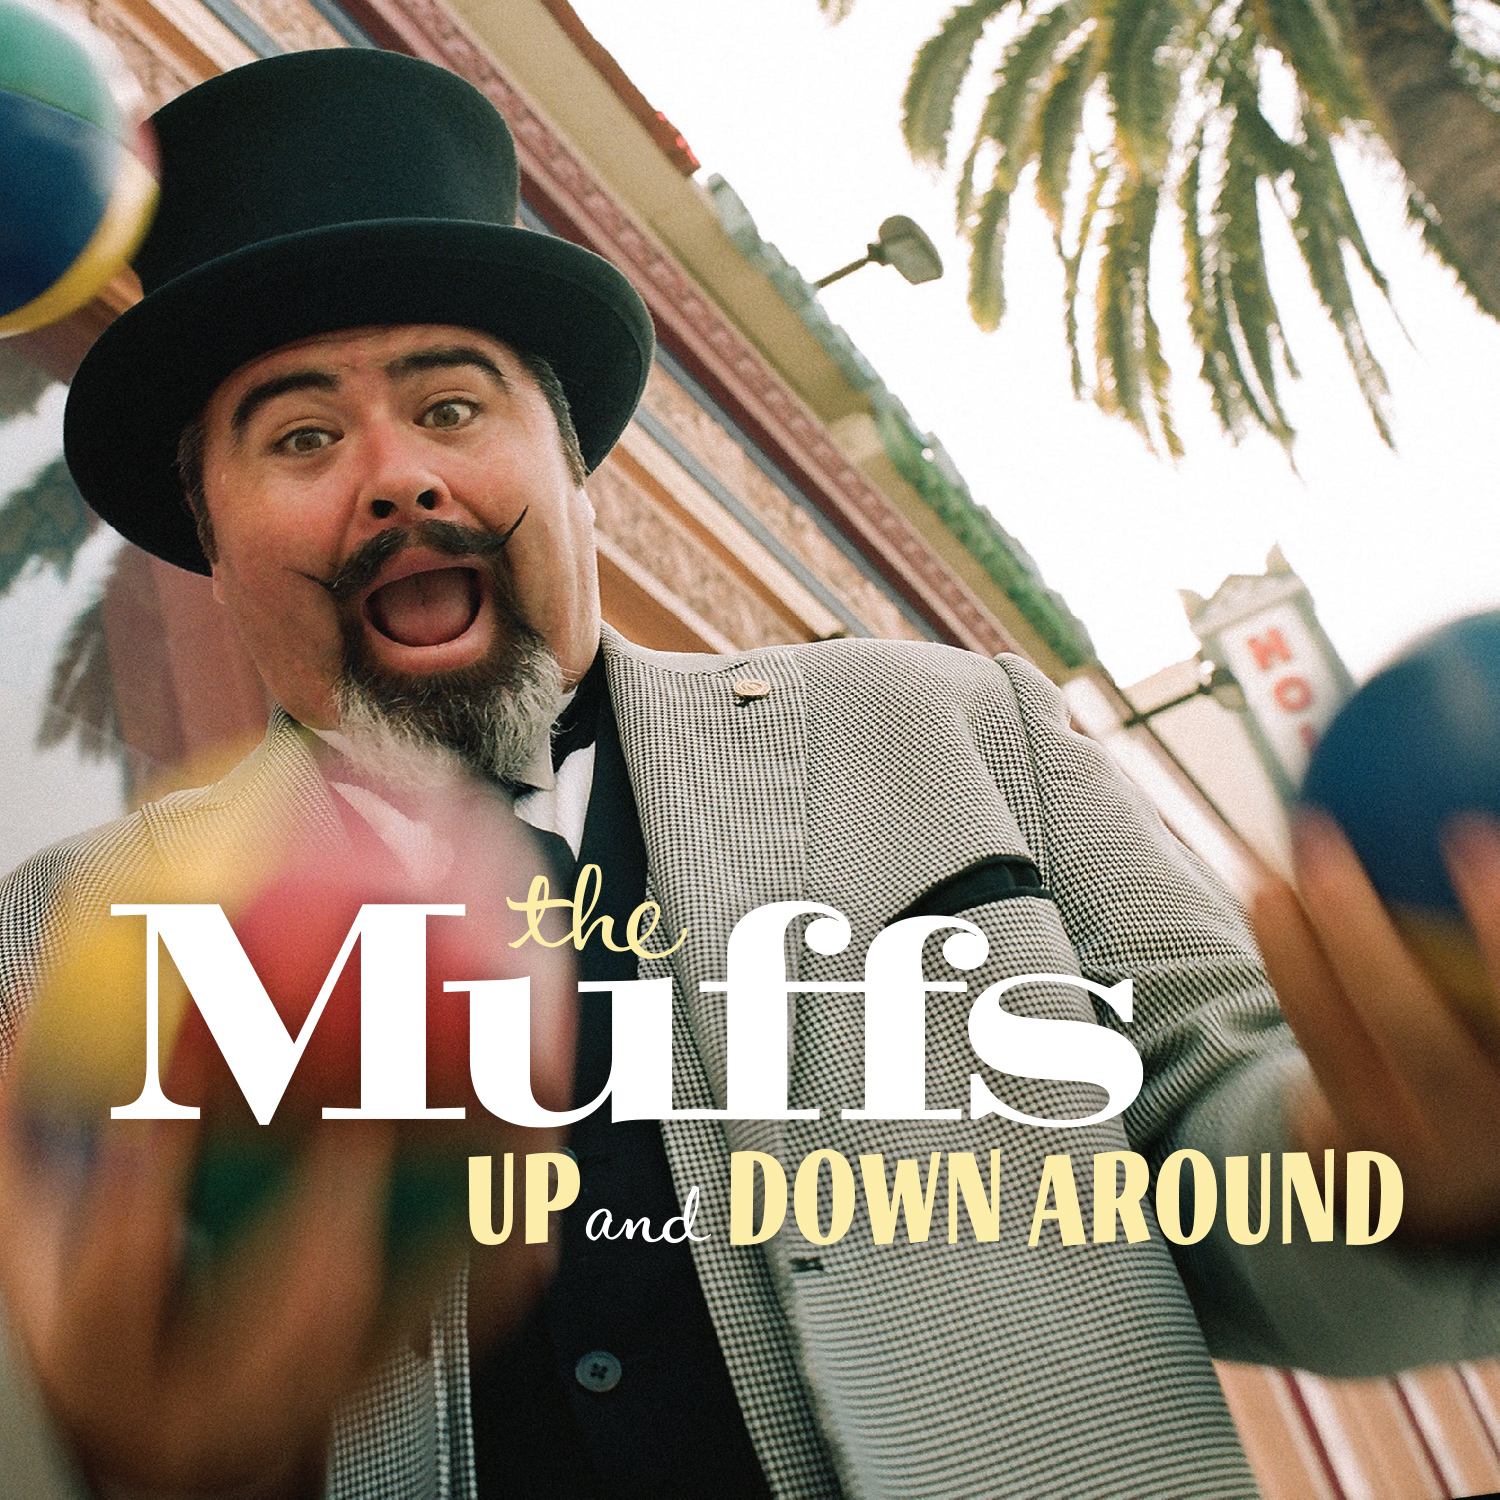 The Muffs - Up and Down Around digital single cover